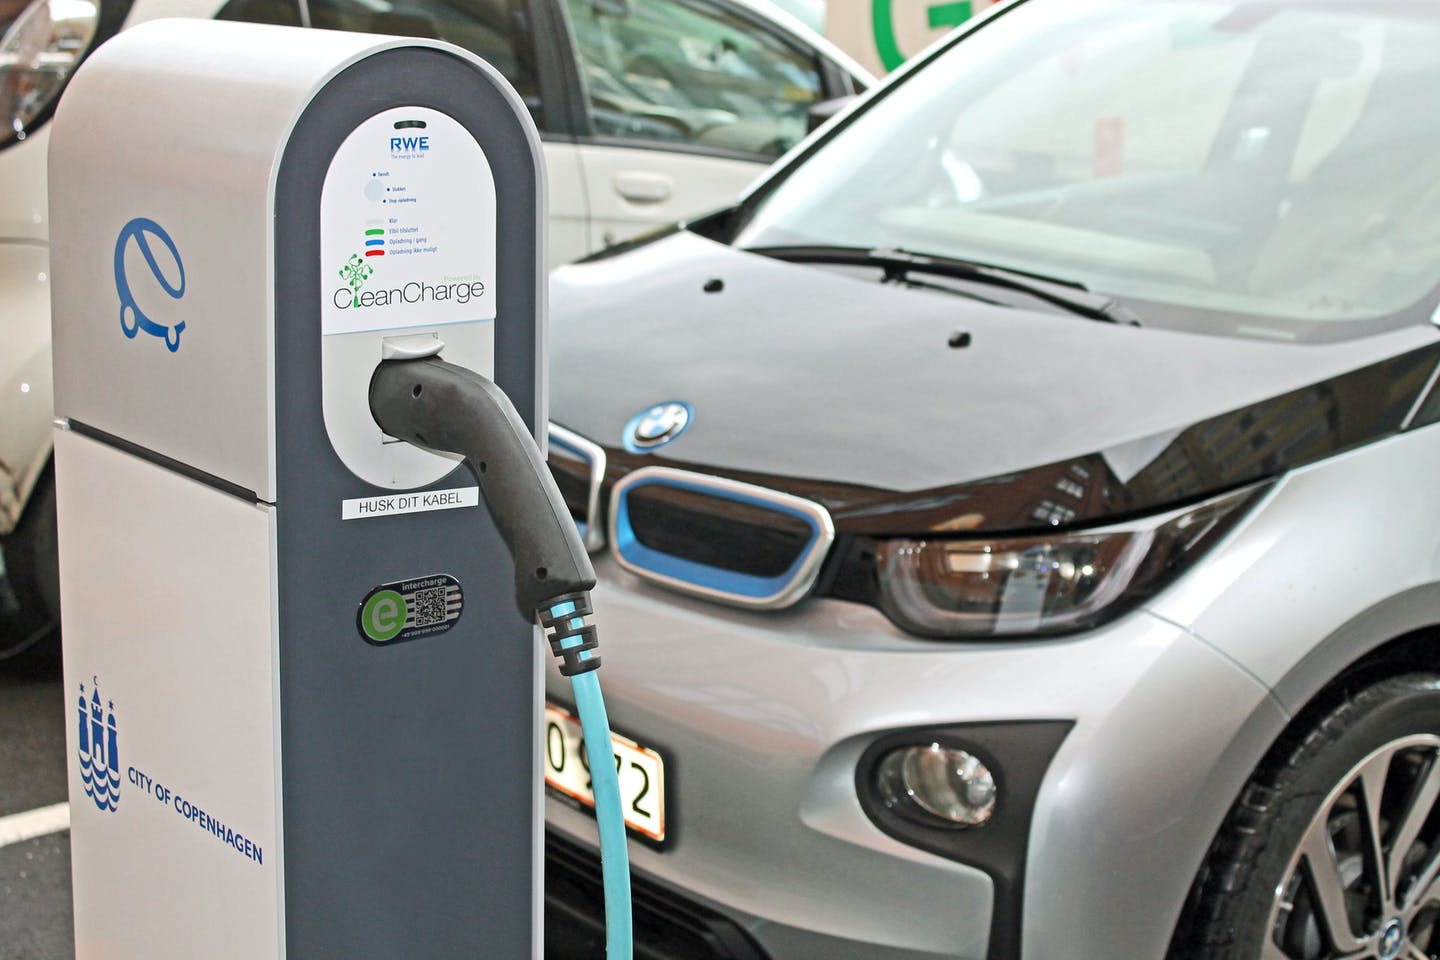 A bmw electric car charging